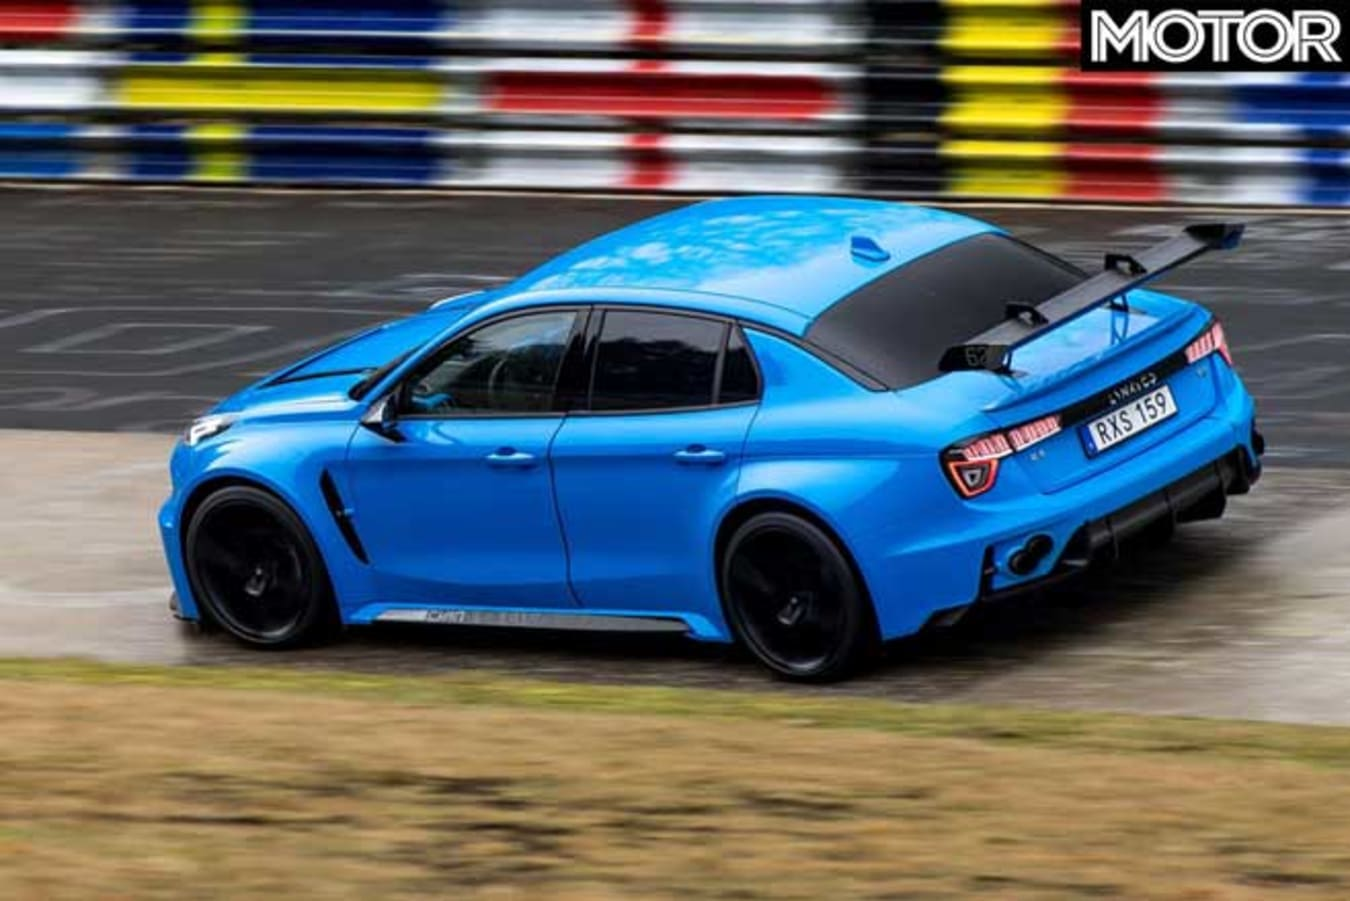 Lynk Co 03 Cyan Concept FWD Nurburgring Record Carousell Rear Jpg